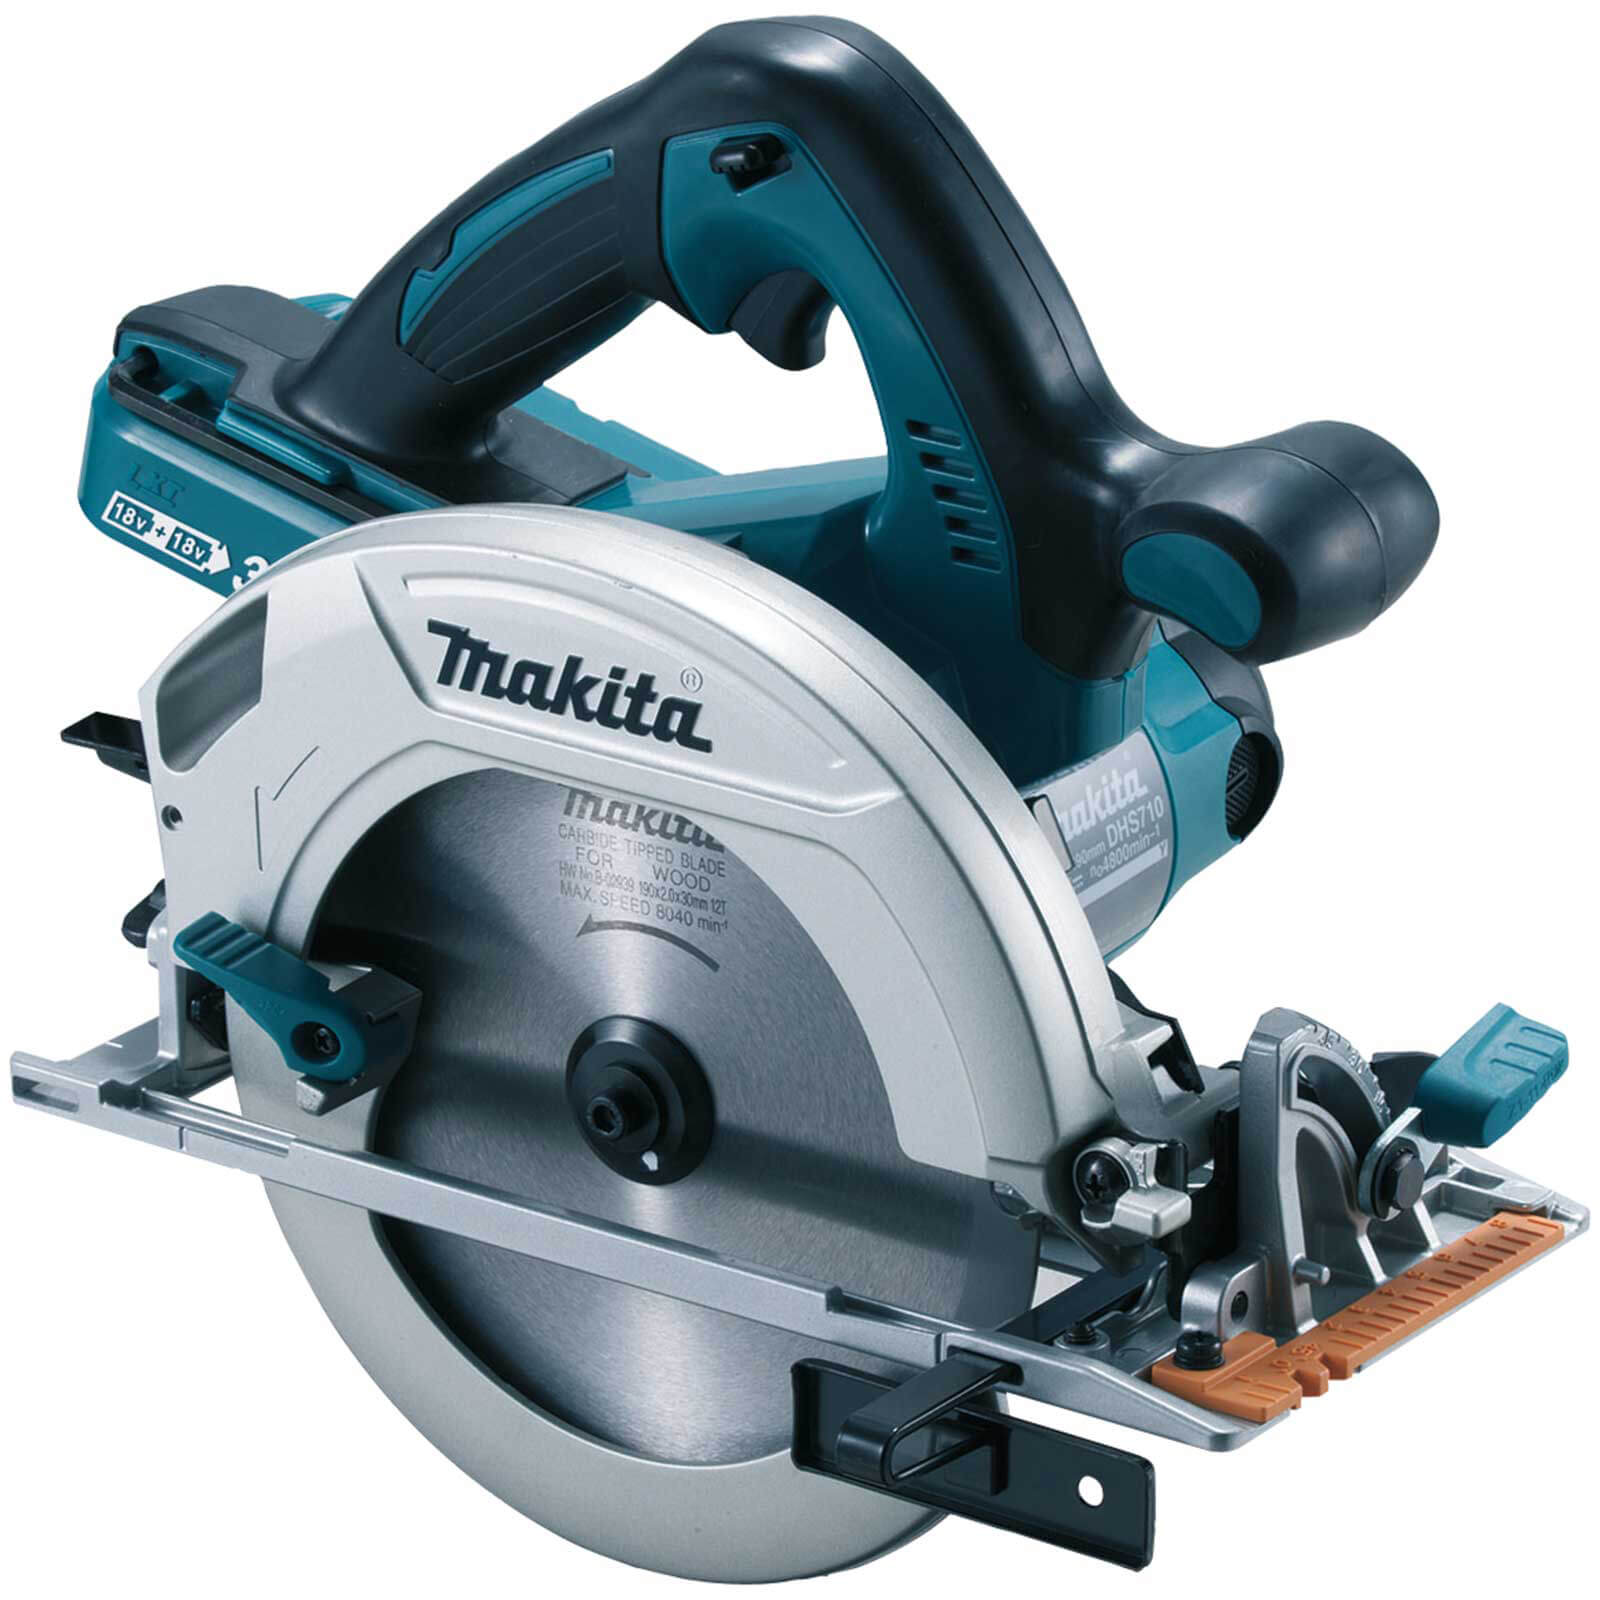 Image of Makita DHS710 Twin 18v Cordless LXT Circular Saw 185mm No Batteries No Charger Case